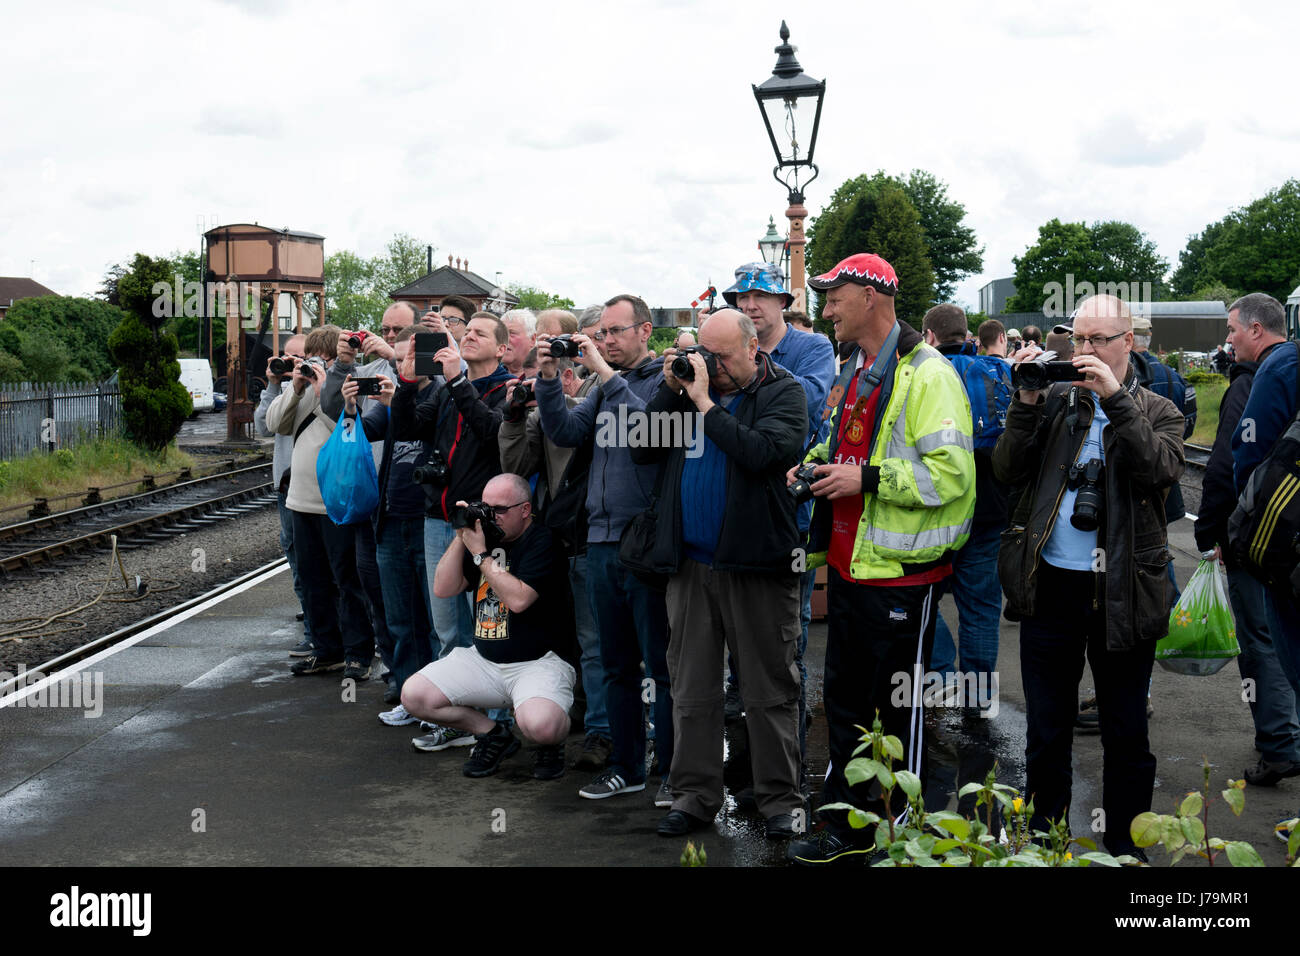 Rail enthusiasts taking photographs at the Spring Diesel Festival at the Severn Valley Railway, Kidderminster station, - Stock Image